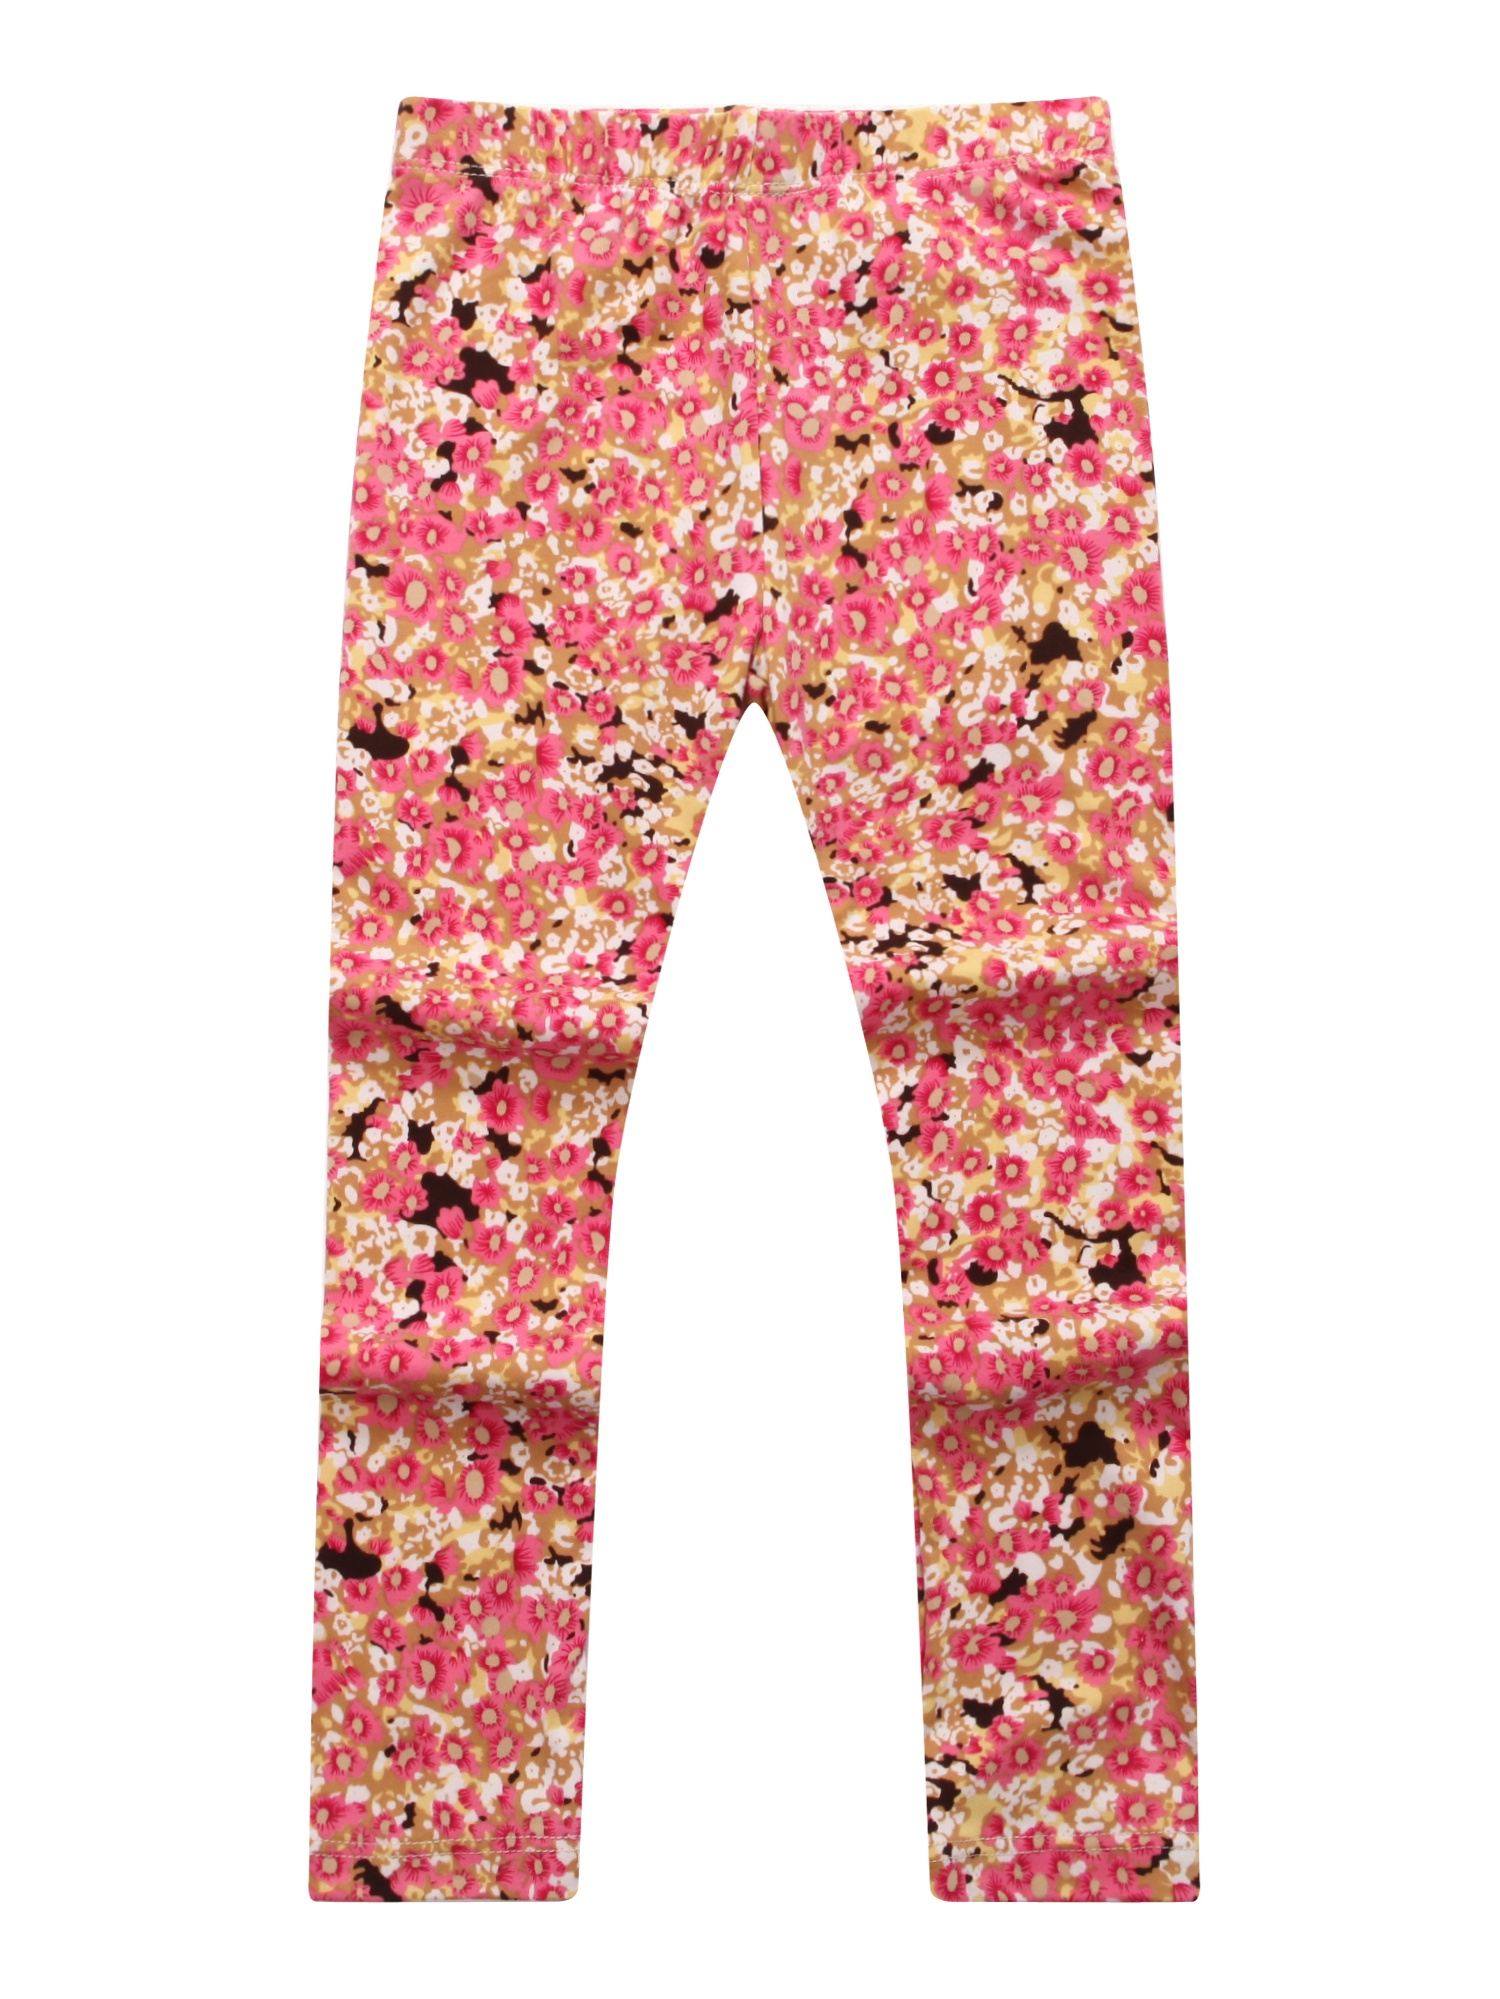 Richie House Girls' Patterned Stretch Pants RH0704